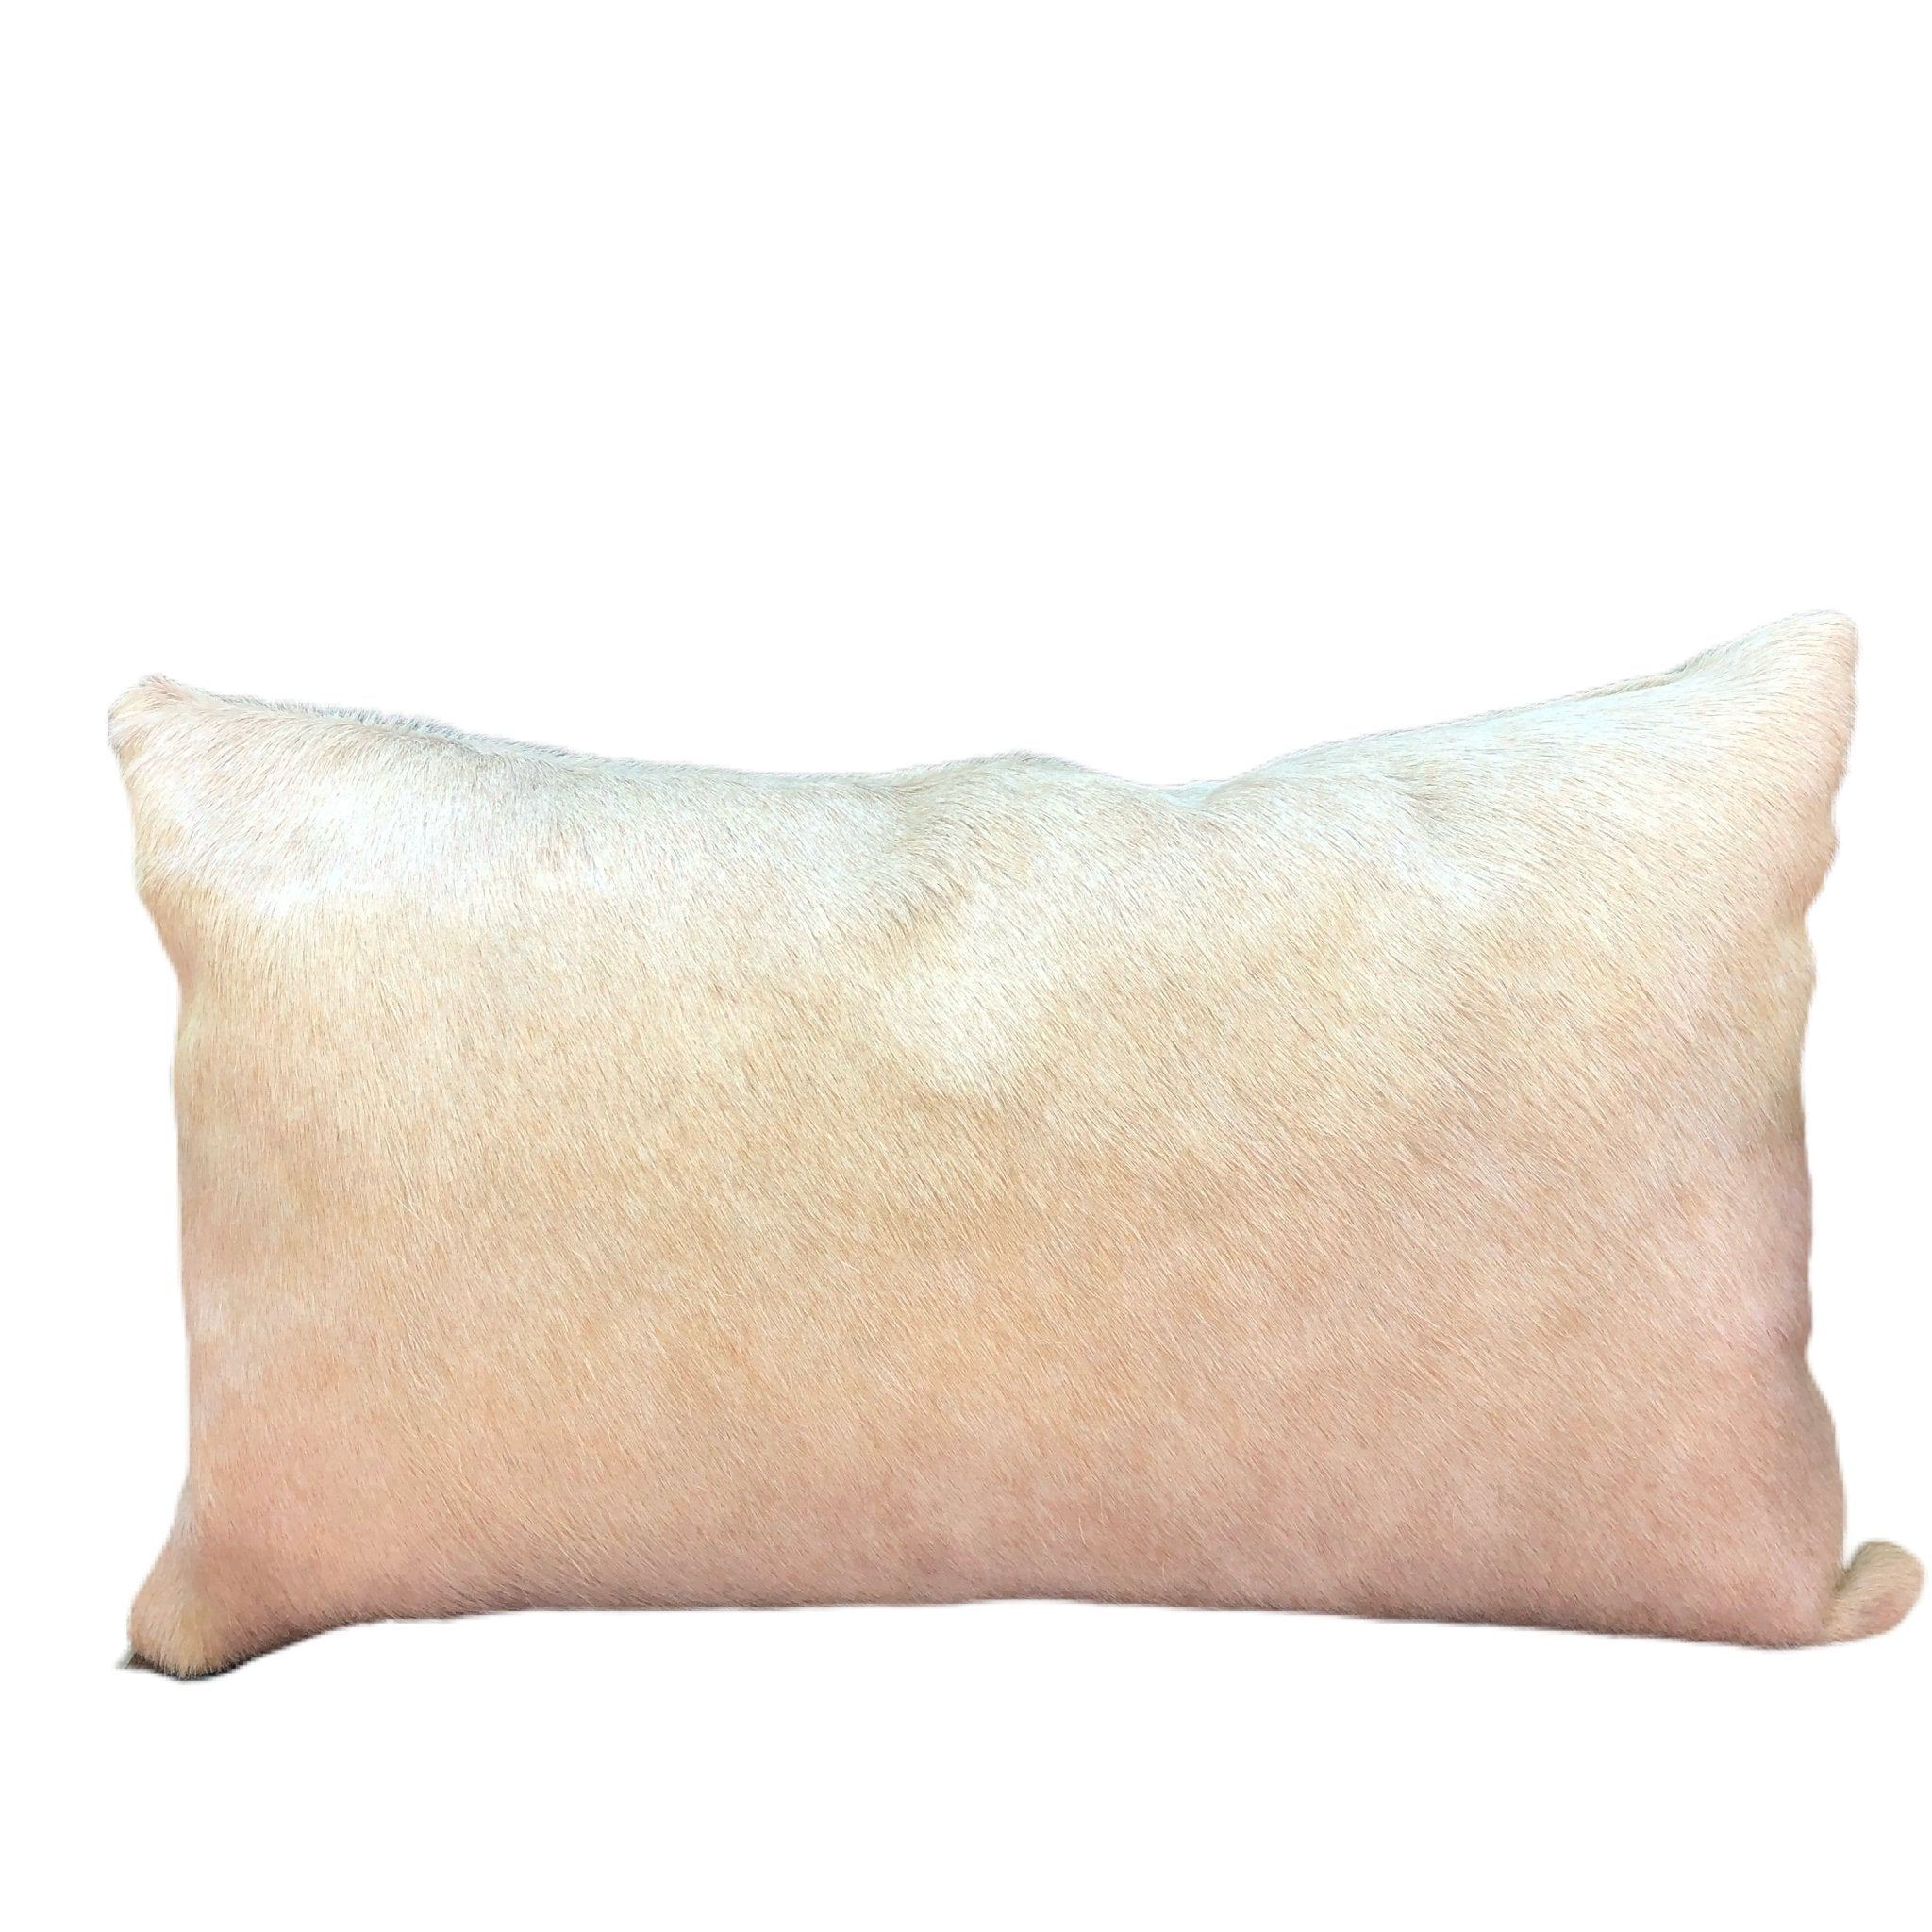 Solid Light Beige Mix 22x13 Pillow - Inspired Evanston